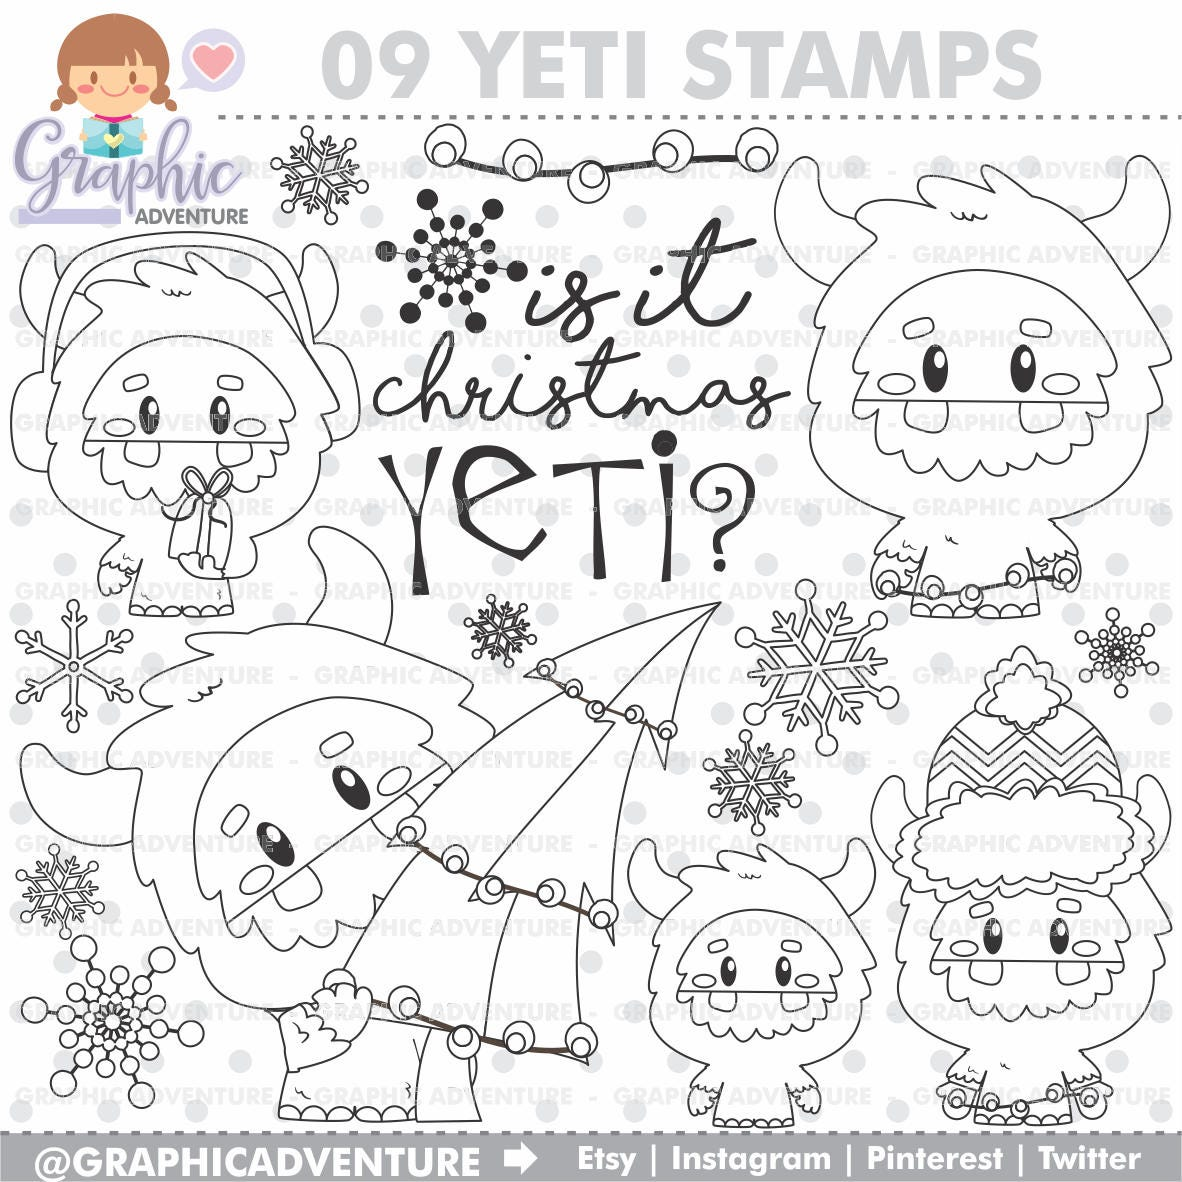 Yeti Stamps Winter Christmas COMMERCIAL